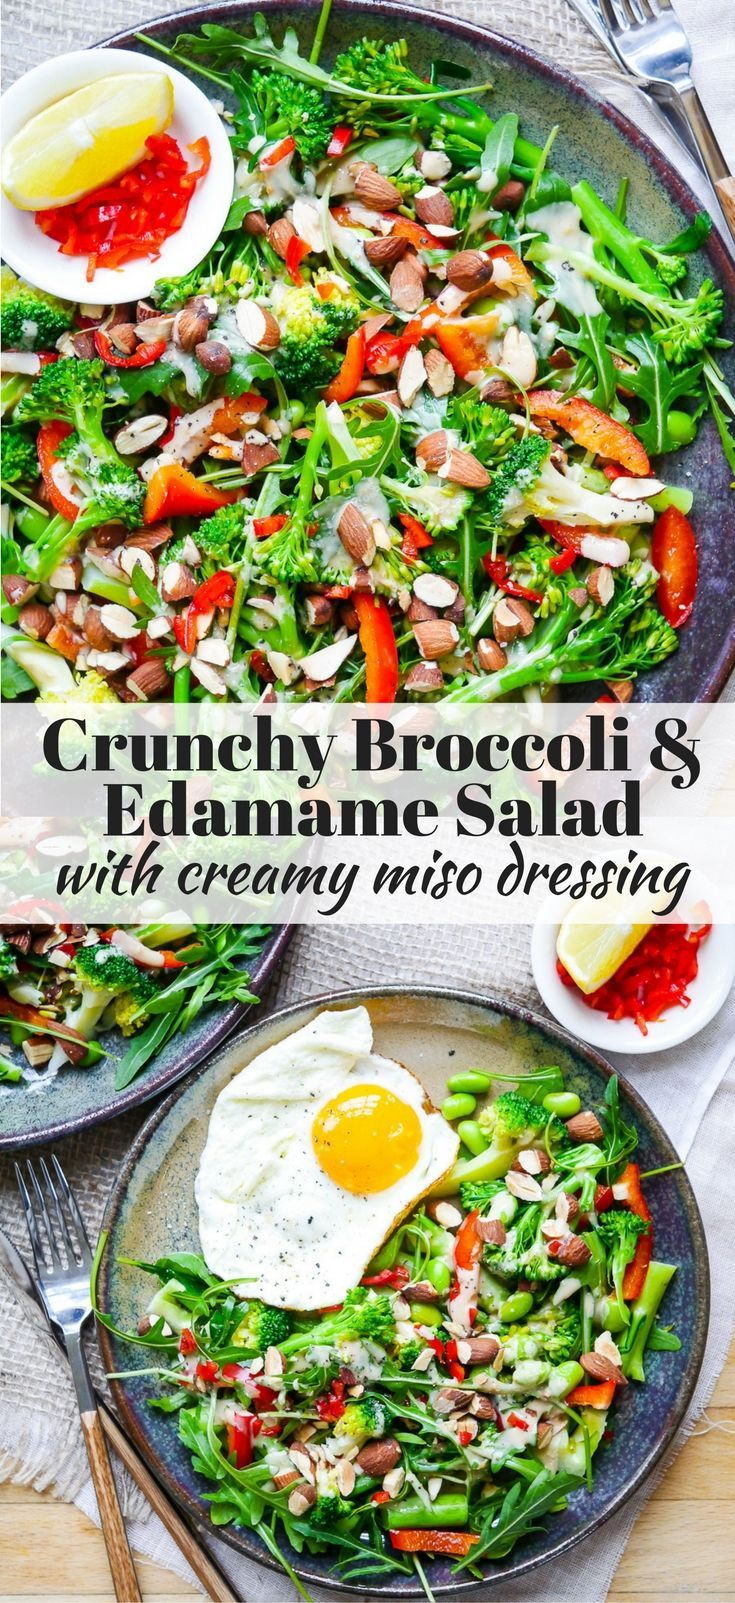 This crunchy broccoli edamame salad is finished with a creamy miso dressing. Dairy free, gluten free and vegan friendly! Recipe at nourisheveryday.com